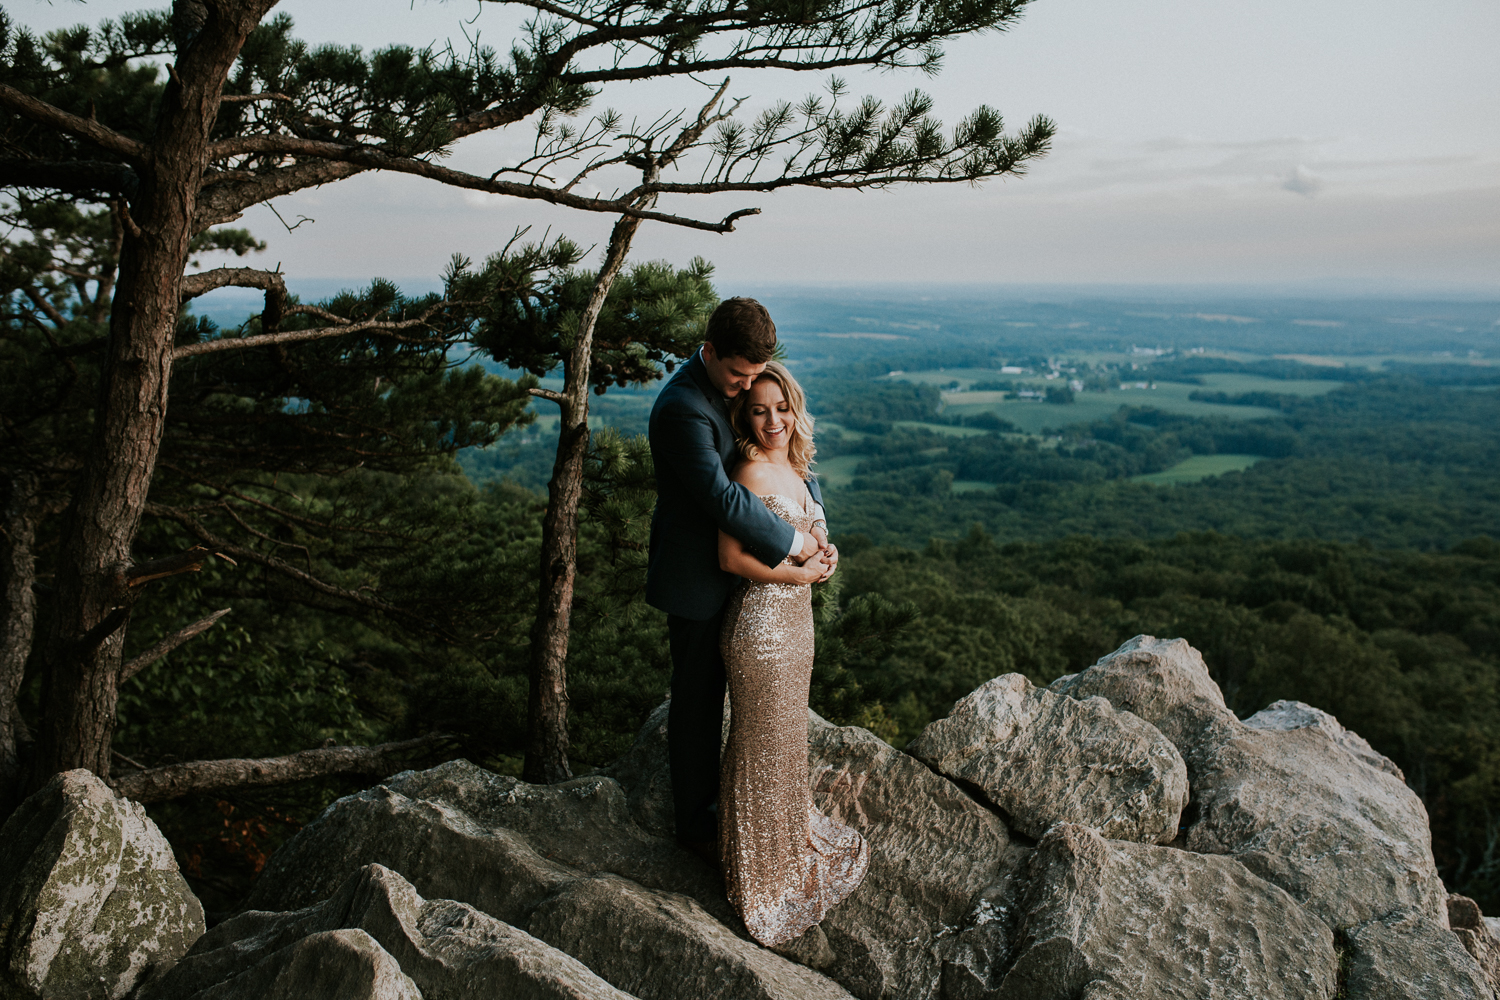 sugar_loaf_mountain_maryland_mountain_top_engagement_photographer-26.jpg